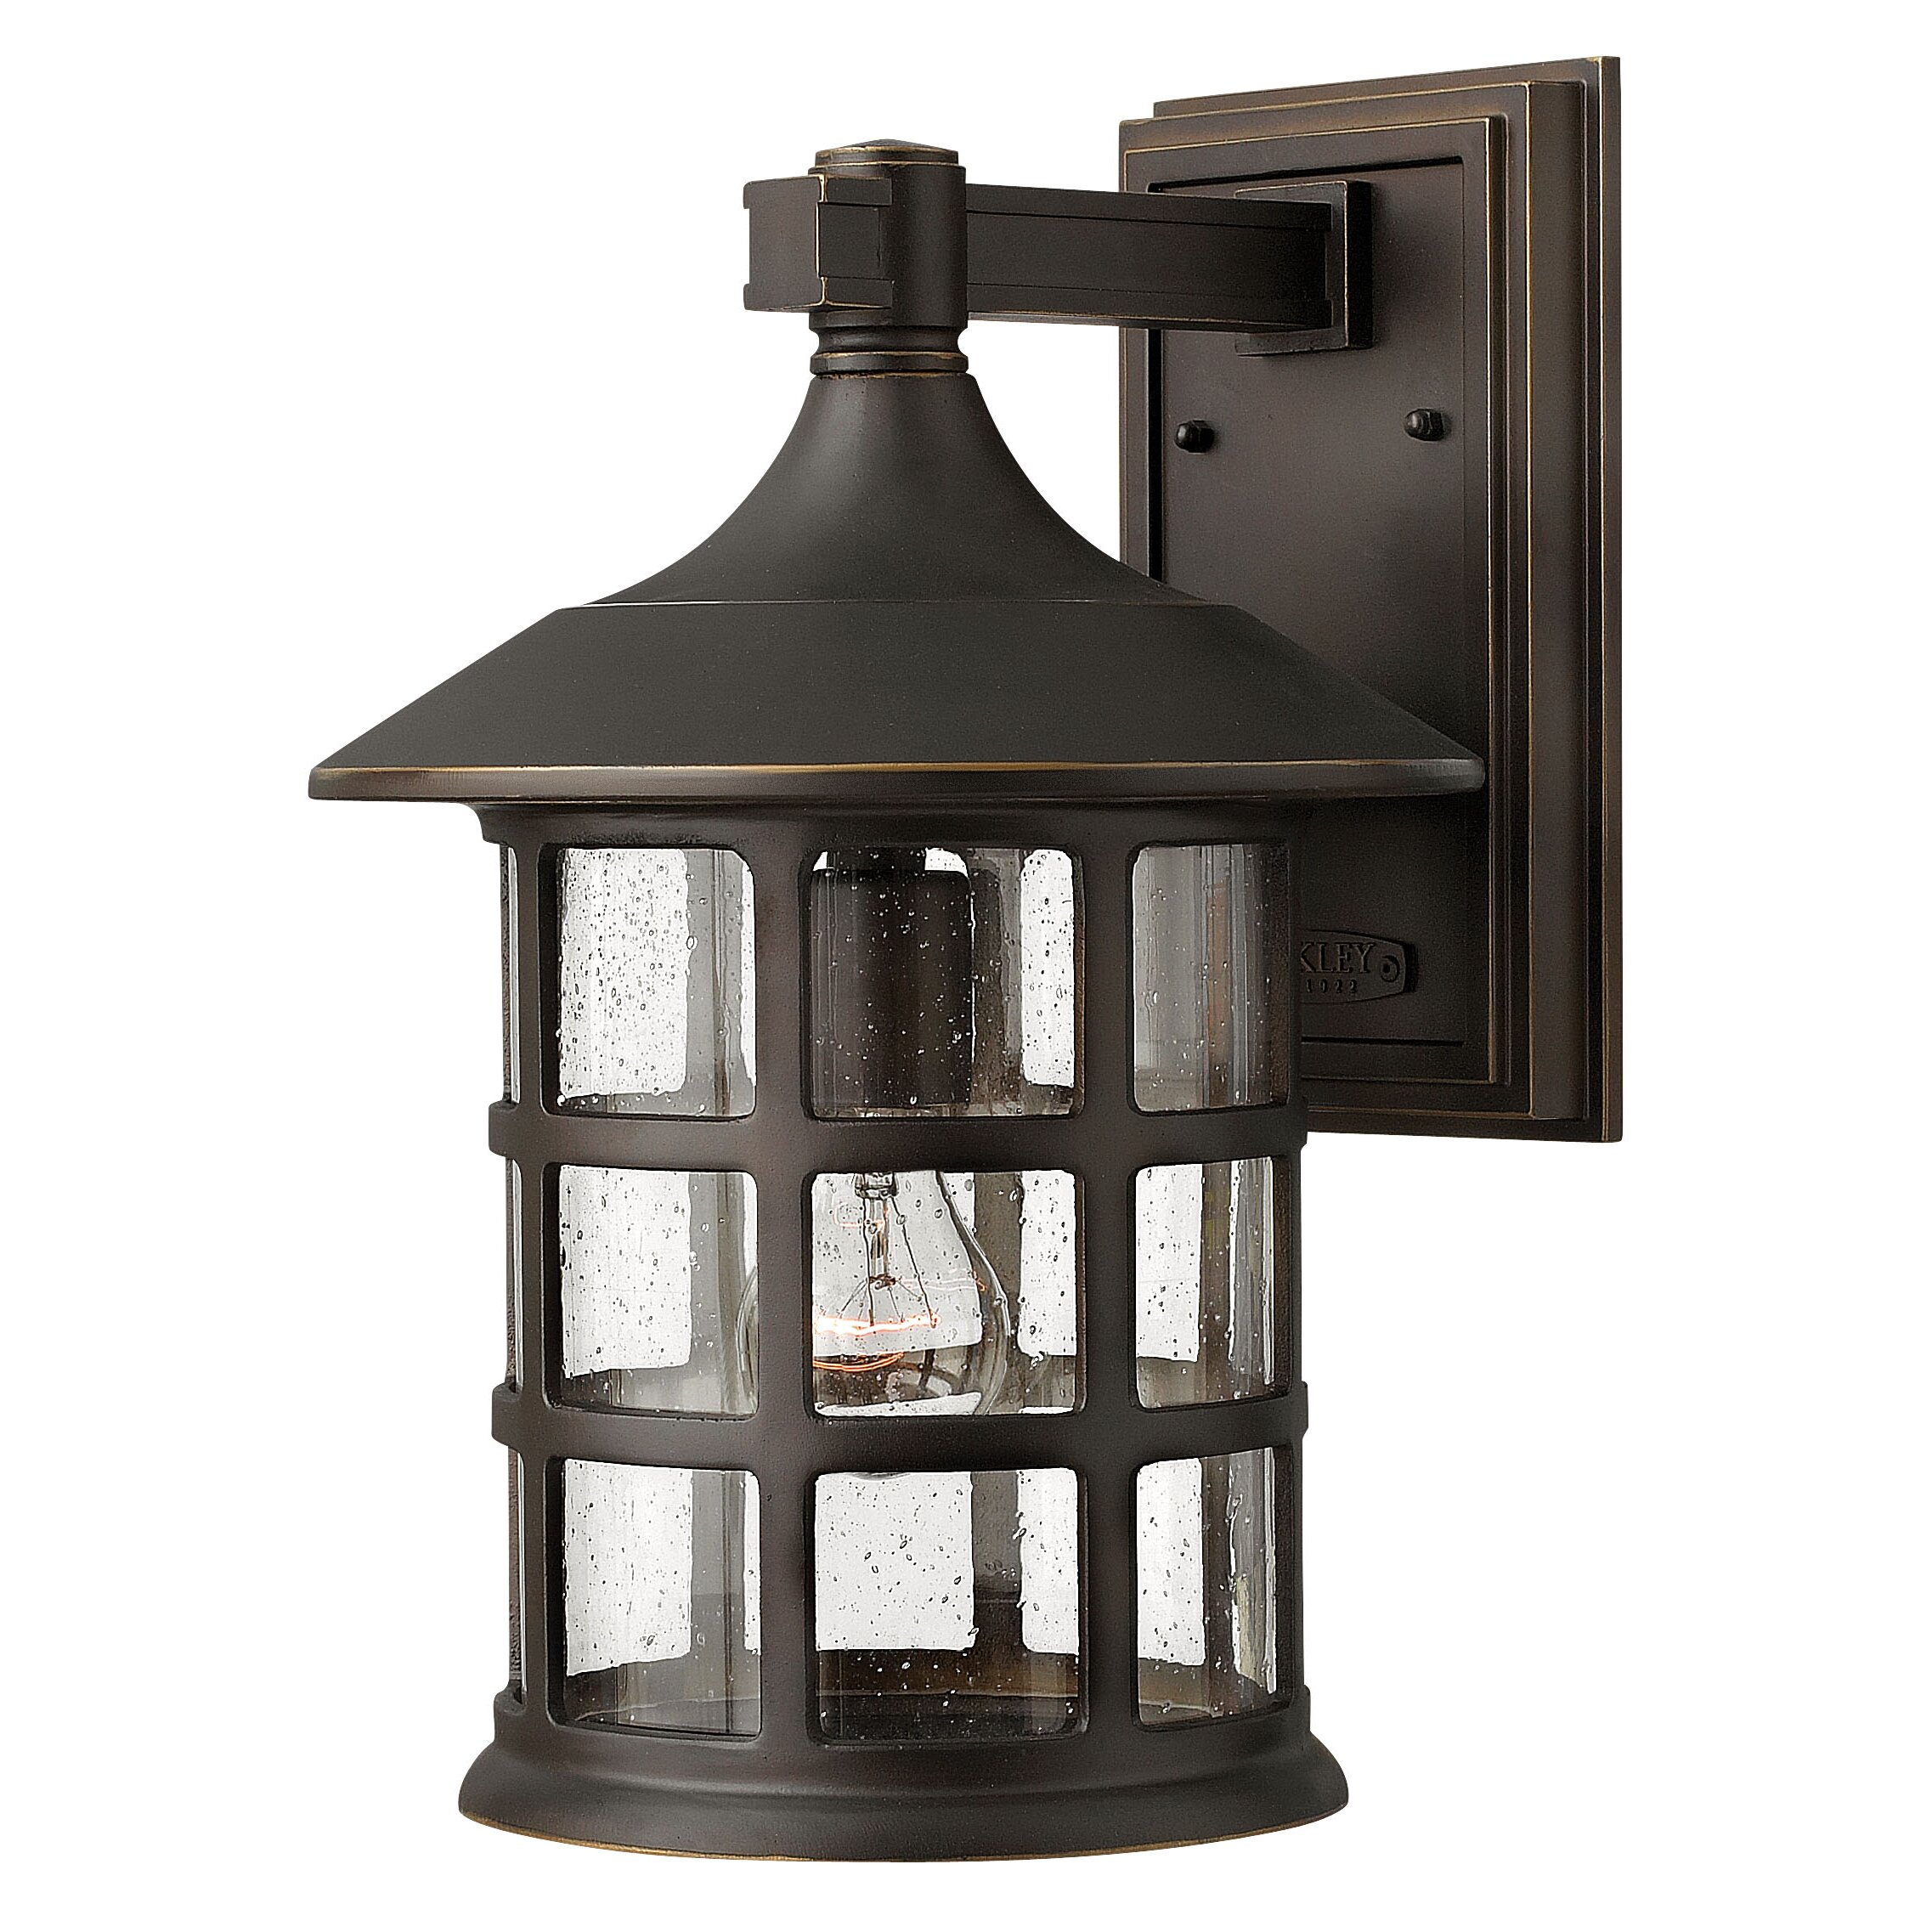 Wayfair Outdoor Wall Lights : Hinkley Lighting Freeport 1 Light Outdoor Wall Lantern & Reviews Wayfair